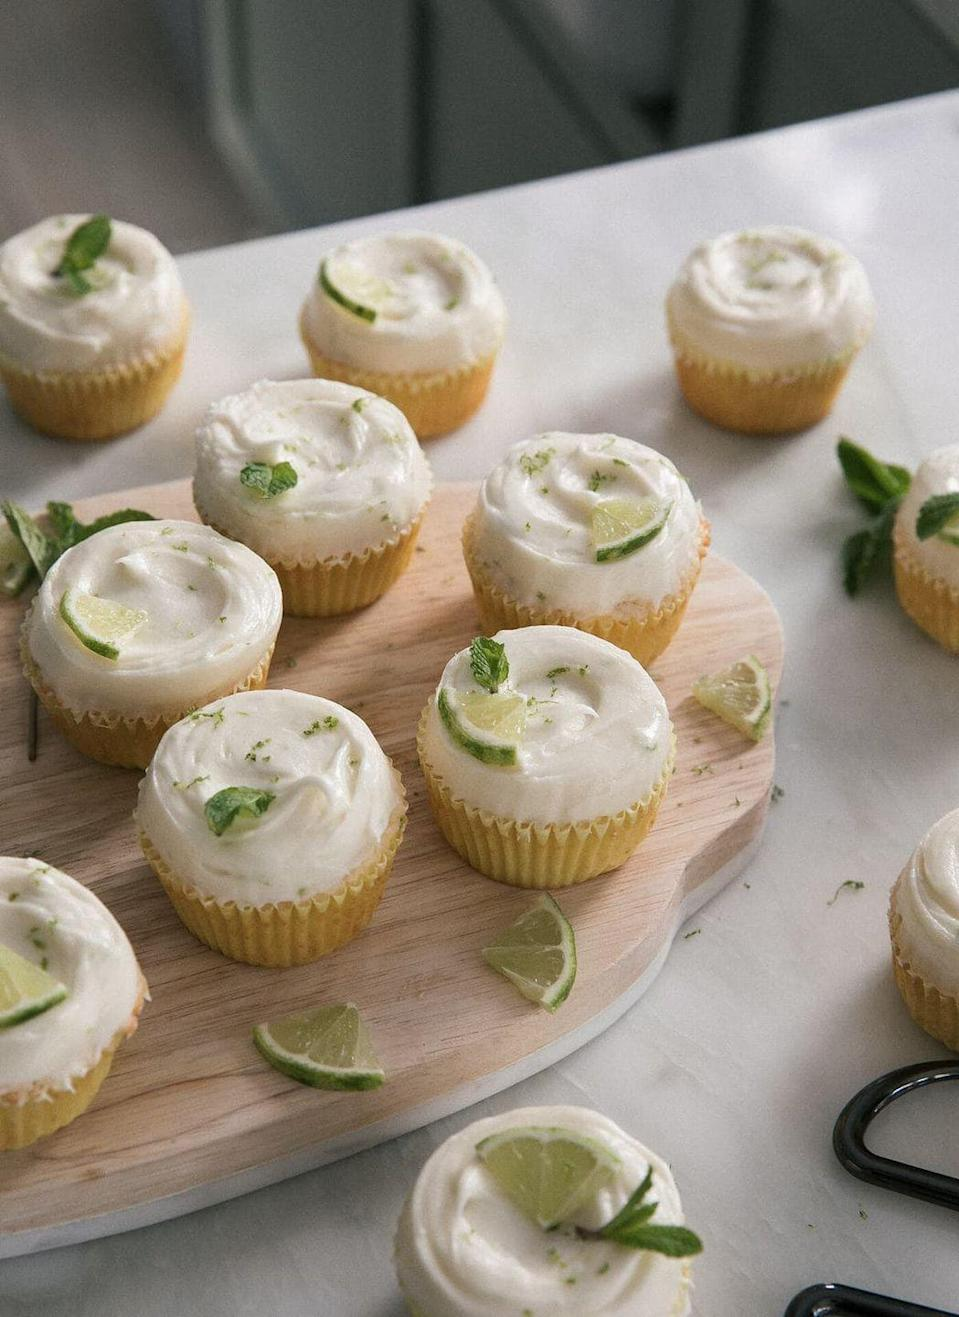 """<p>A cold mojito hits the spot on a hot day—and so do these mojito cupcakes! They're infused with lime juice, fresh mint, and a little rum, of course.</p><p><strong>Get the recipe at <a href=""""https://www.acozykitchen.com/mojito-cupcakes"""" rel=""""nofollow noopener"""" target=""""_blank"""" data-ylk=""""slk:A Cozy Kitchen"""" class=""""link rapid-noclick-resp"""">A Cozy Kitchen</a>.</strong><br><br><a class=""""link rapid-noclick-resp"""" href=""""https://go.redirectingat.com?id=74968X1596630&url=https%3A%2F%2Fwww.walmart.com%2Fsearch%2F%3Fquery%3Dpioneer%2Bwoman%2Bcutting%2Bboards&sref=https%3A%2F%2Fwww.thepioneerwoman.com%2Ffood-cooking%2Frecipes%2Fg36343624%2F4th-of-july-cupcakes%2F"""" rel=""""nofollow noopener"""" target=""""_blank"""" data-ylk=""""slk:SHOP PIONEER WOMAN CUTTING BOARDS"""">SHOP PIONEER WOMAN CUTTING BOARDS</a></p>"""